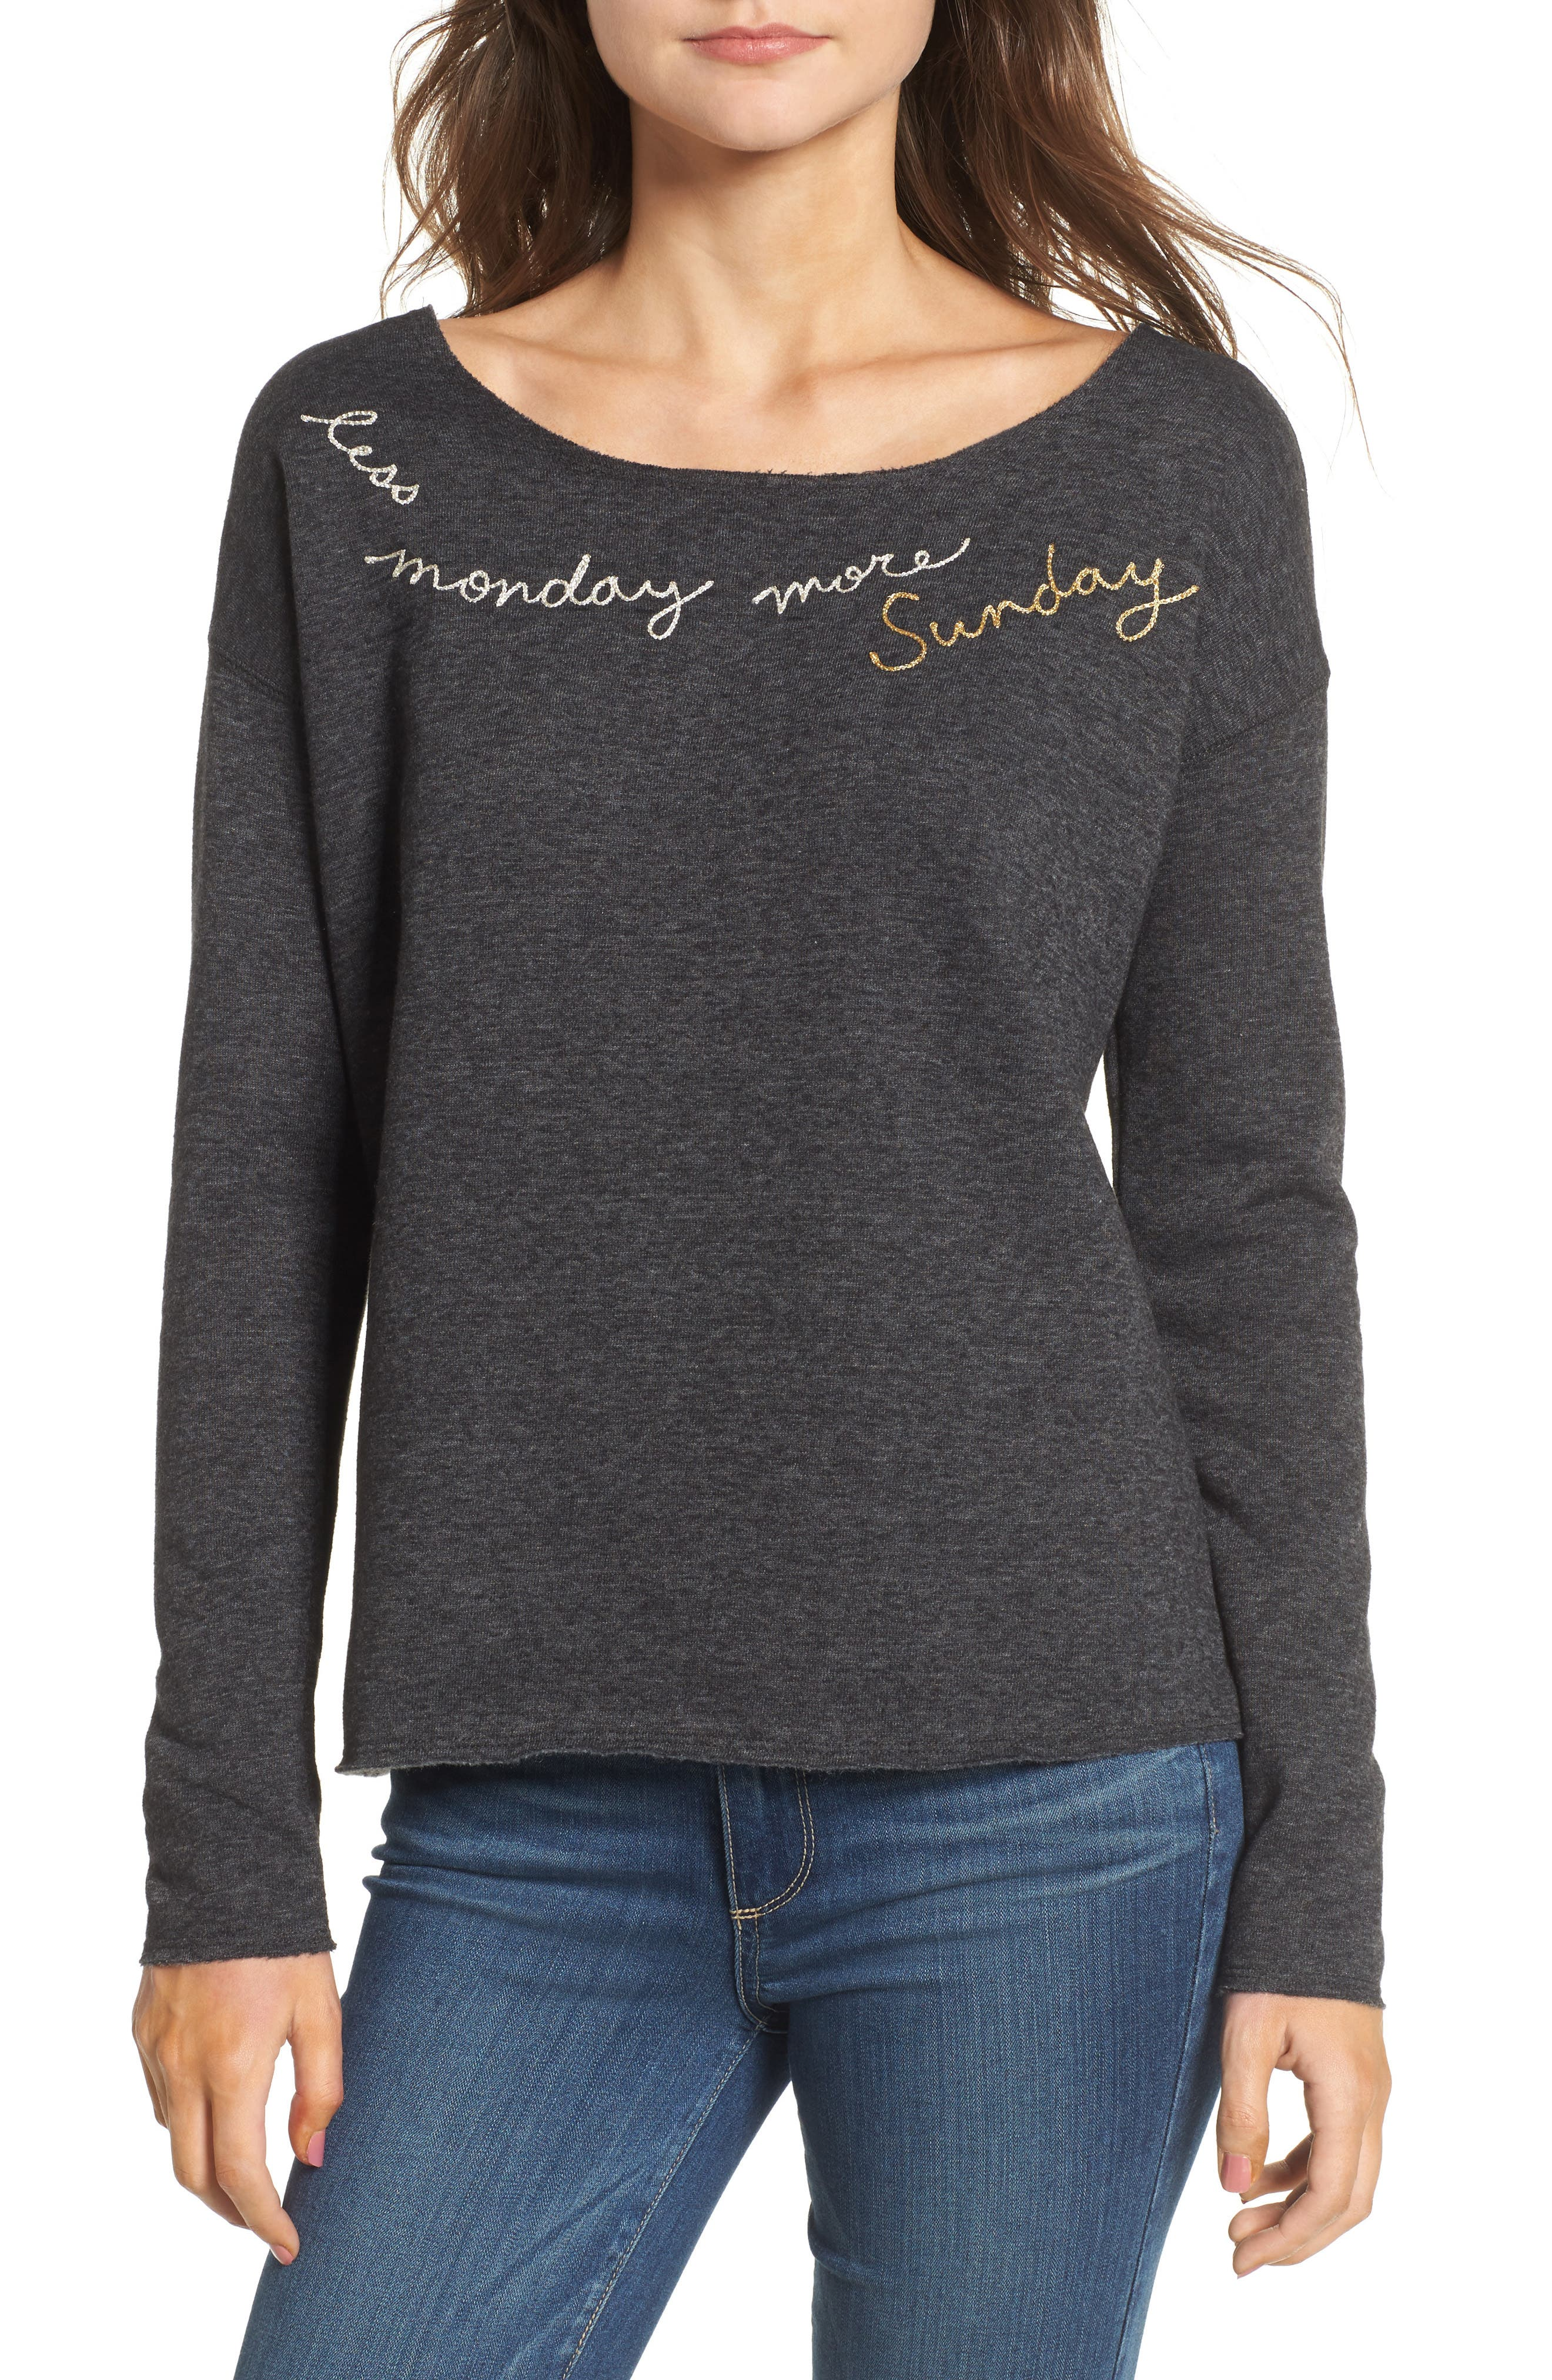 Less Monday More Sunday Sweatshirt,                         Main,                         color, 021